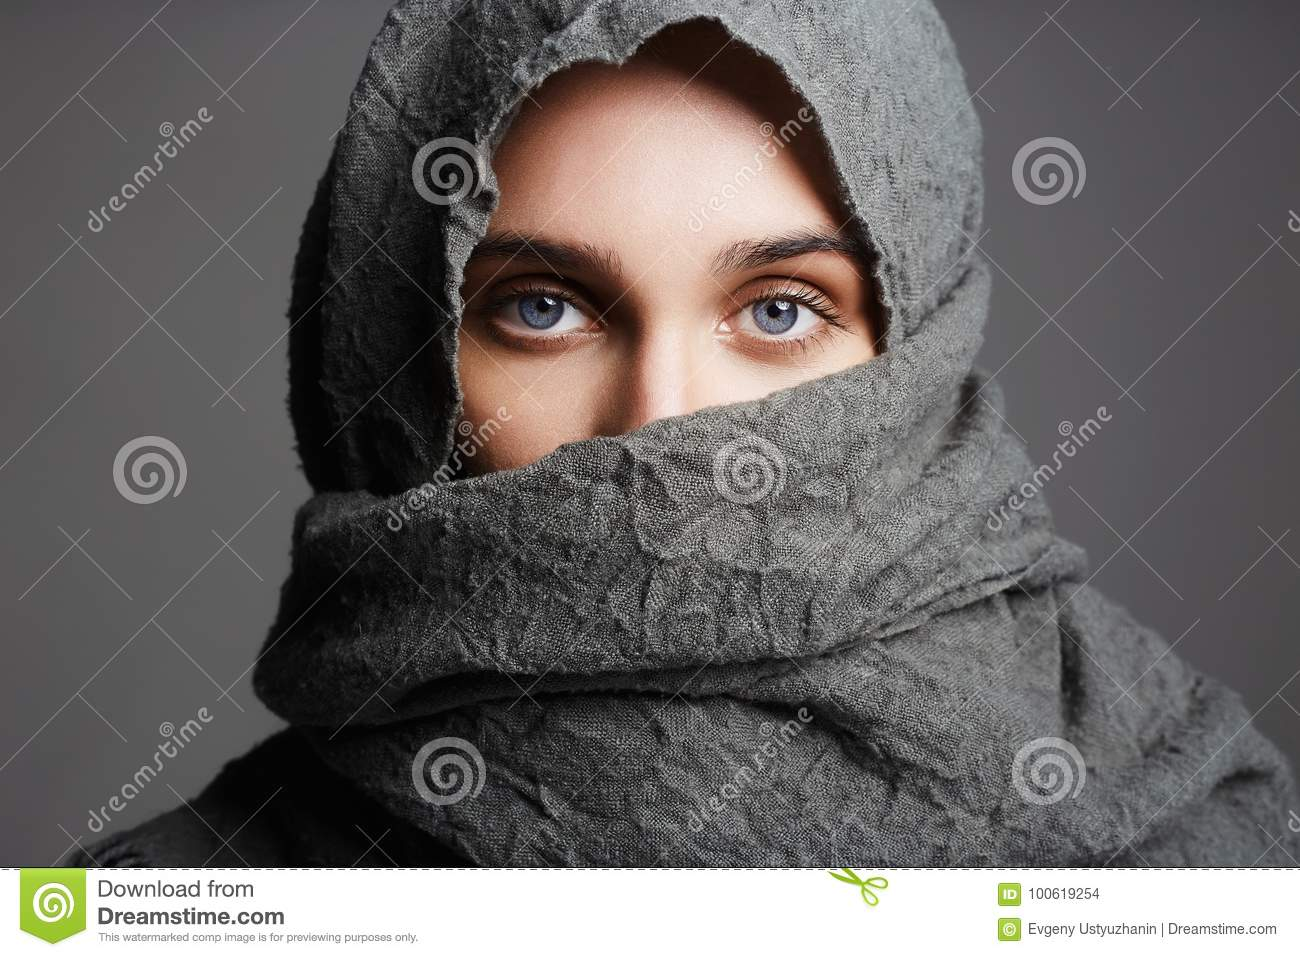 525ec2ab3c9 Beautiful woman covers her face with hi jab.fashionable arabian style girl. beauty portrait